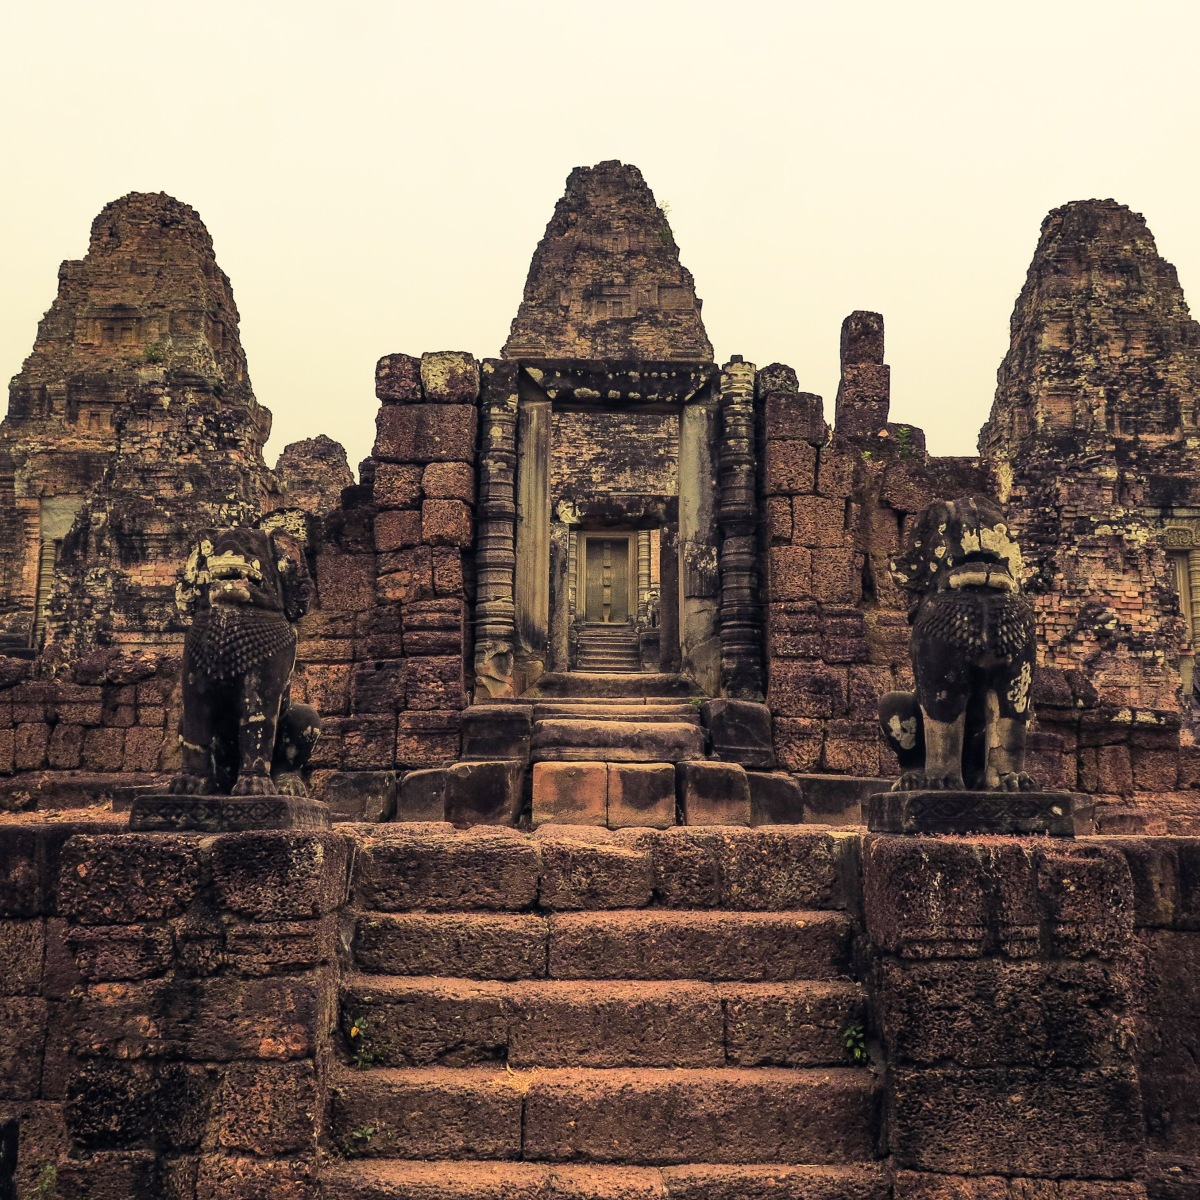 Angkor Wat - We Came, We Saw, We Got Sunburned and Hopelessly Lost